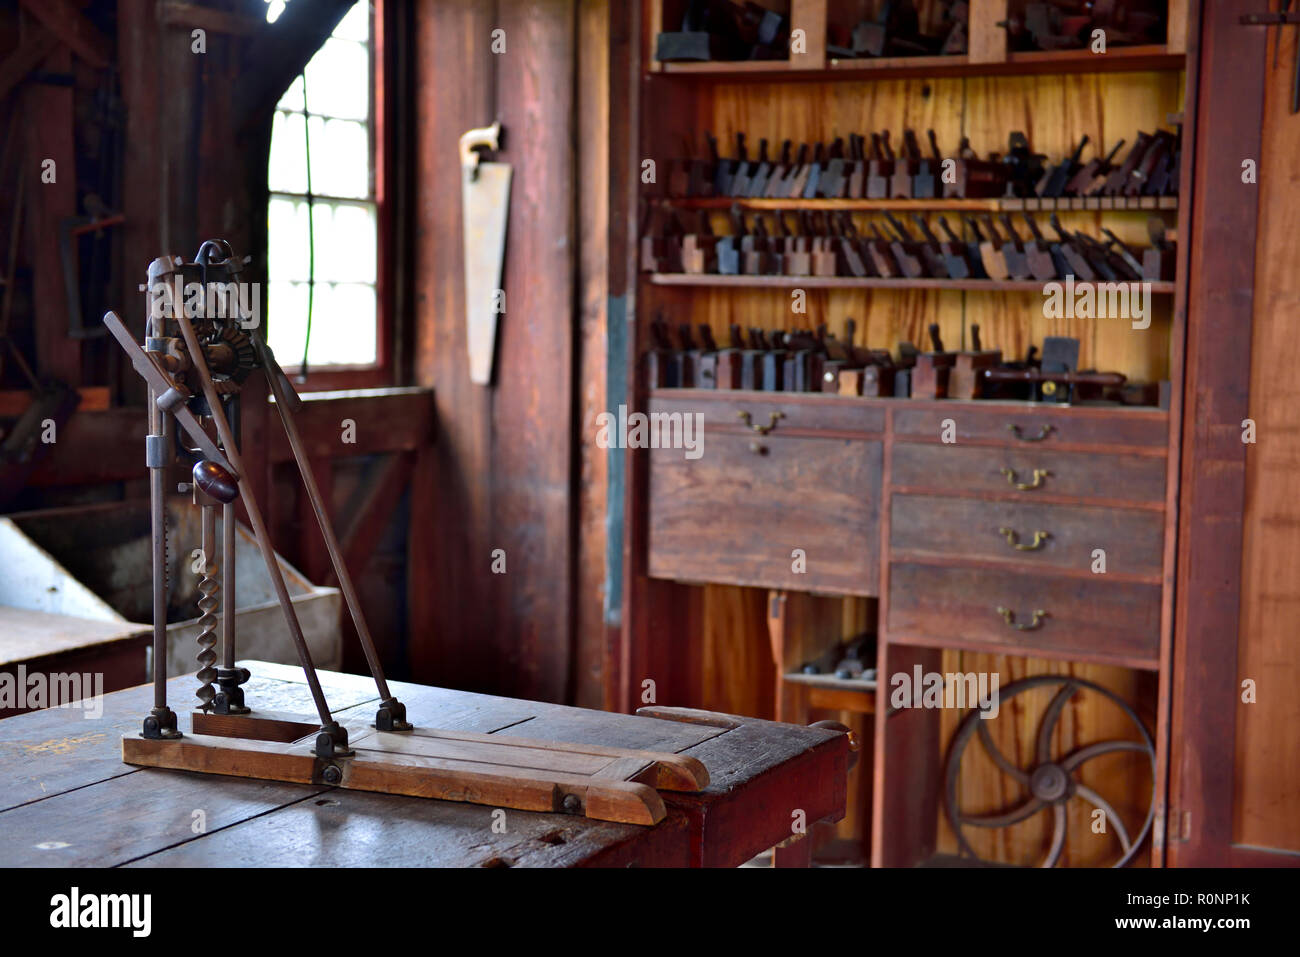 Inside Hancock Shaker Village woodworking workshop with barn beam drill press and molding planes Pittsfield MA, USA - Stock Image